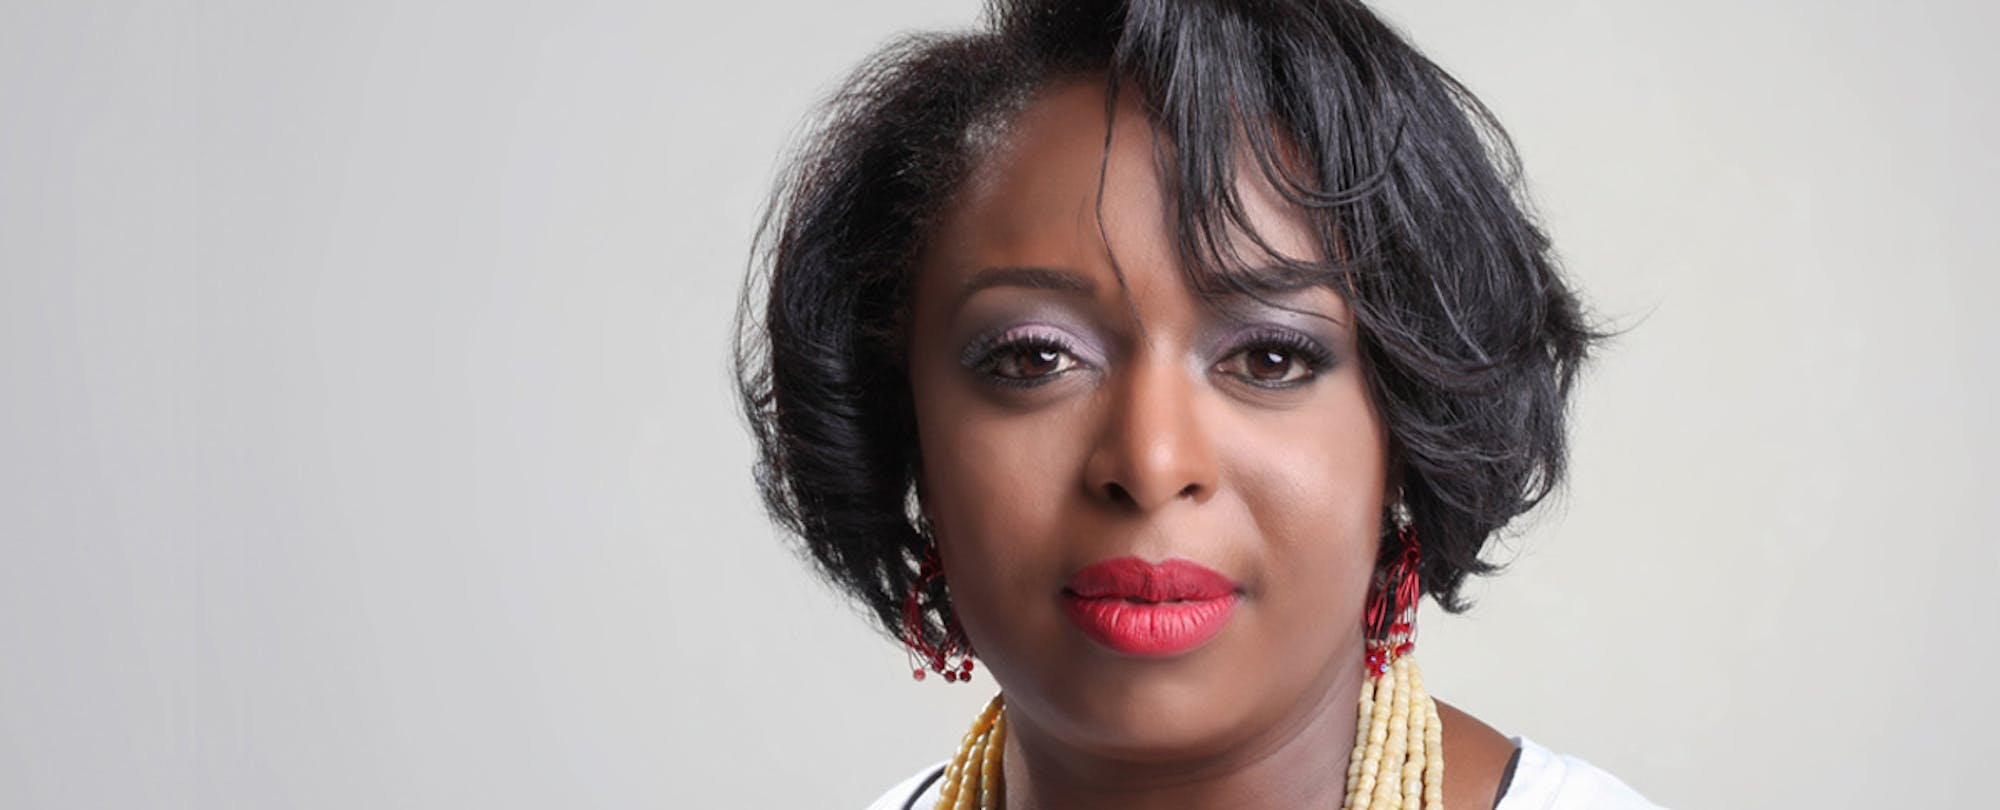 Where Diversity, Inclusion and Education Meet: A Conversation With Black Girls Code Founder, Kimberly Bryant